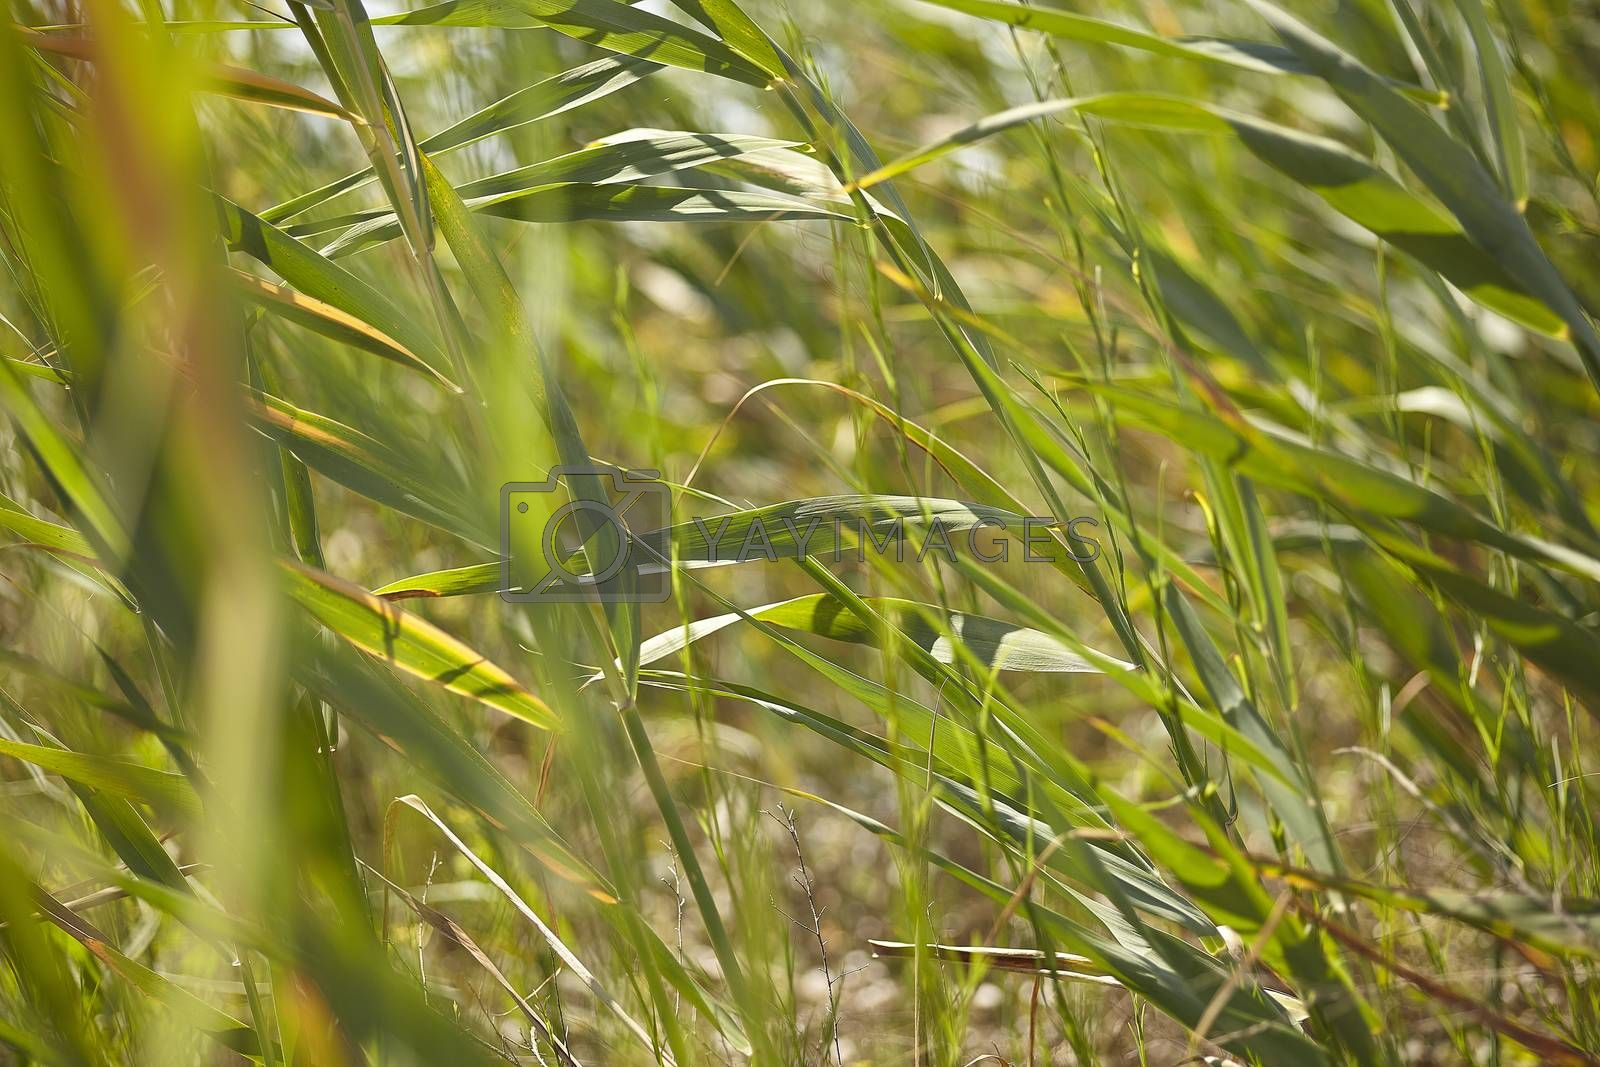 Royalty free image of Blades of grass #5 by pippocarlot